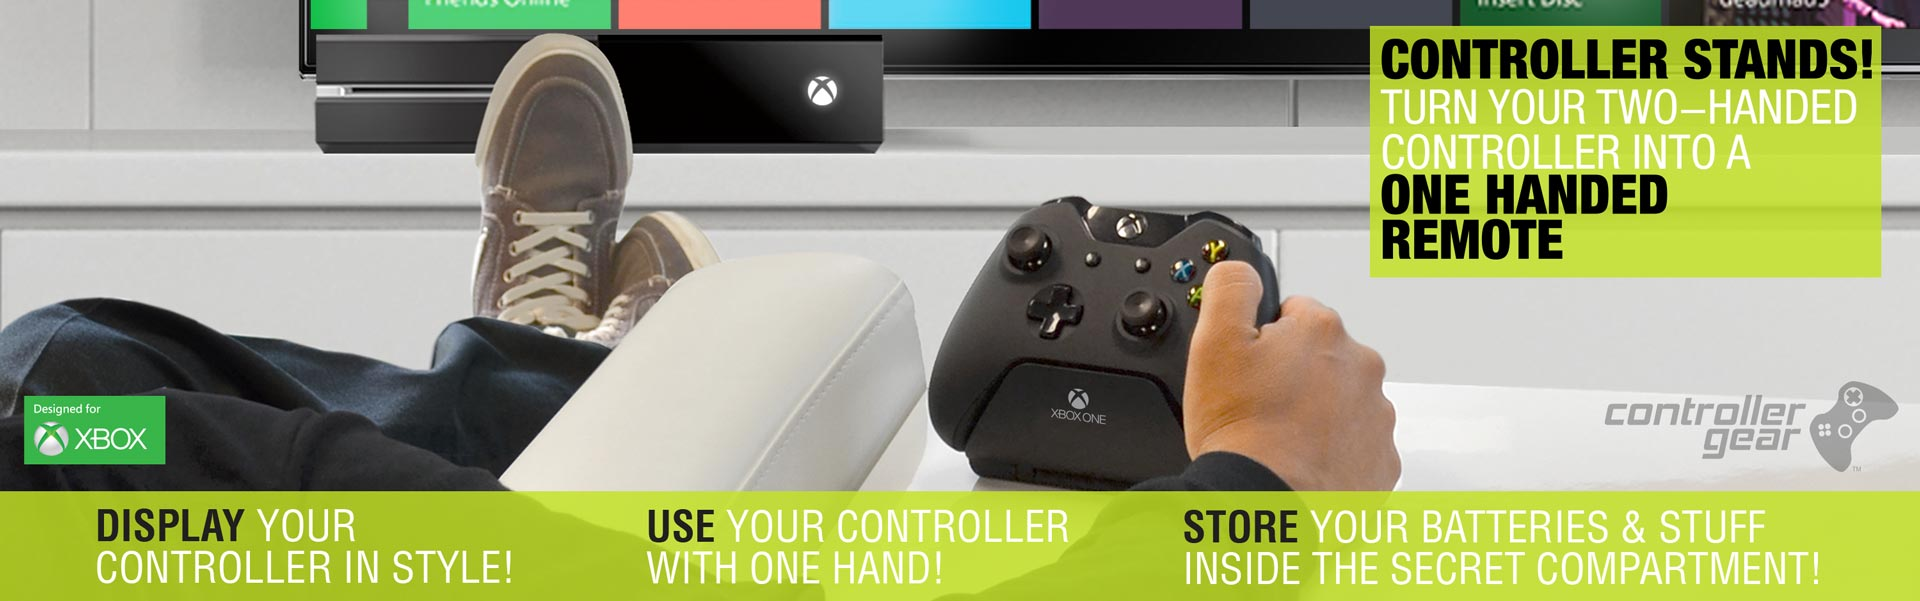 Controller Gear Controller stands turn your two handed controller into a one handed remote Xbox official products